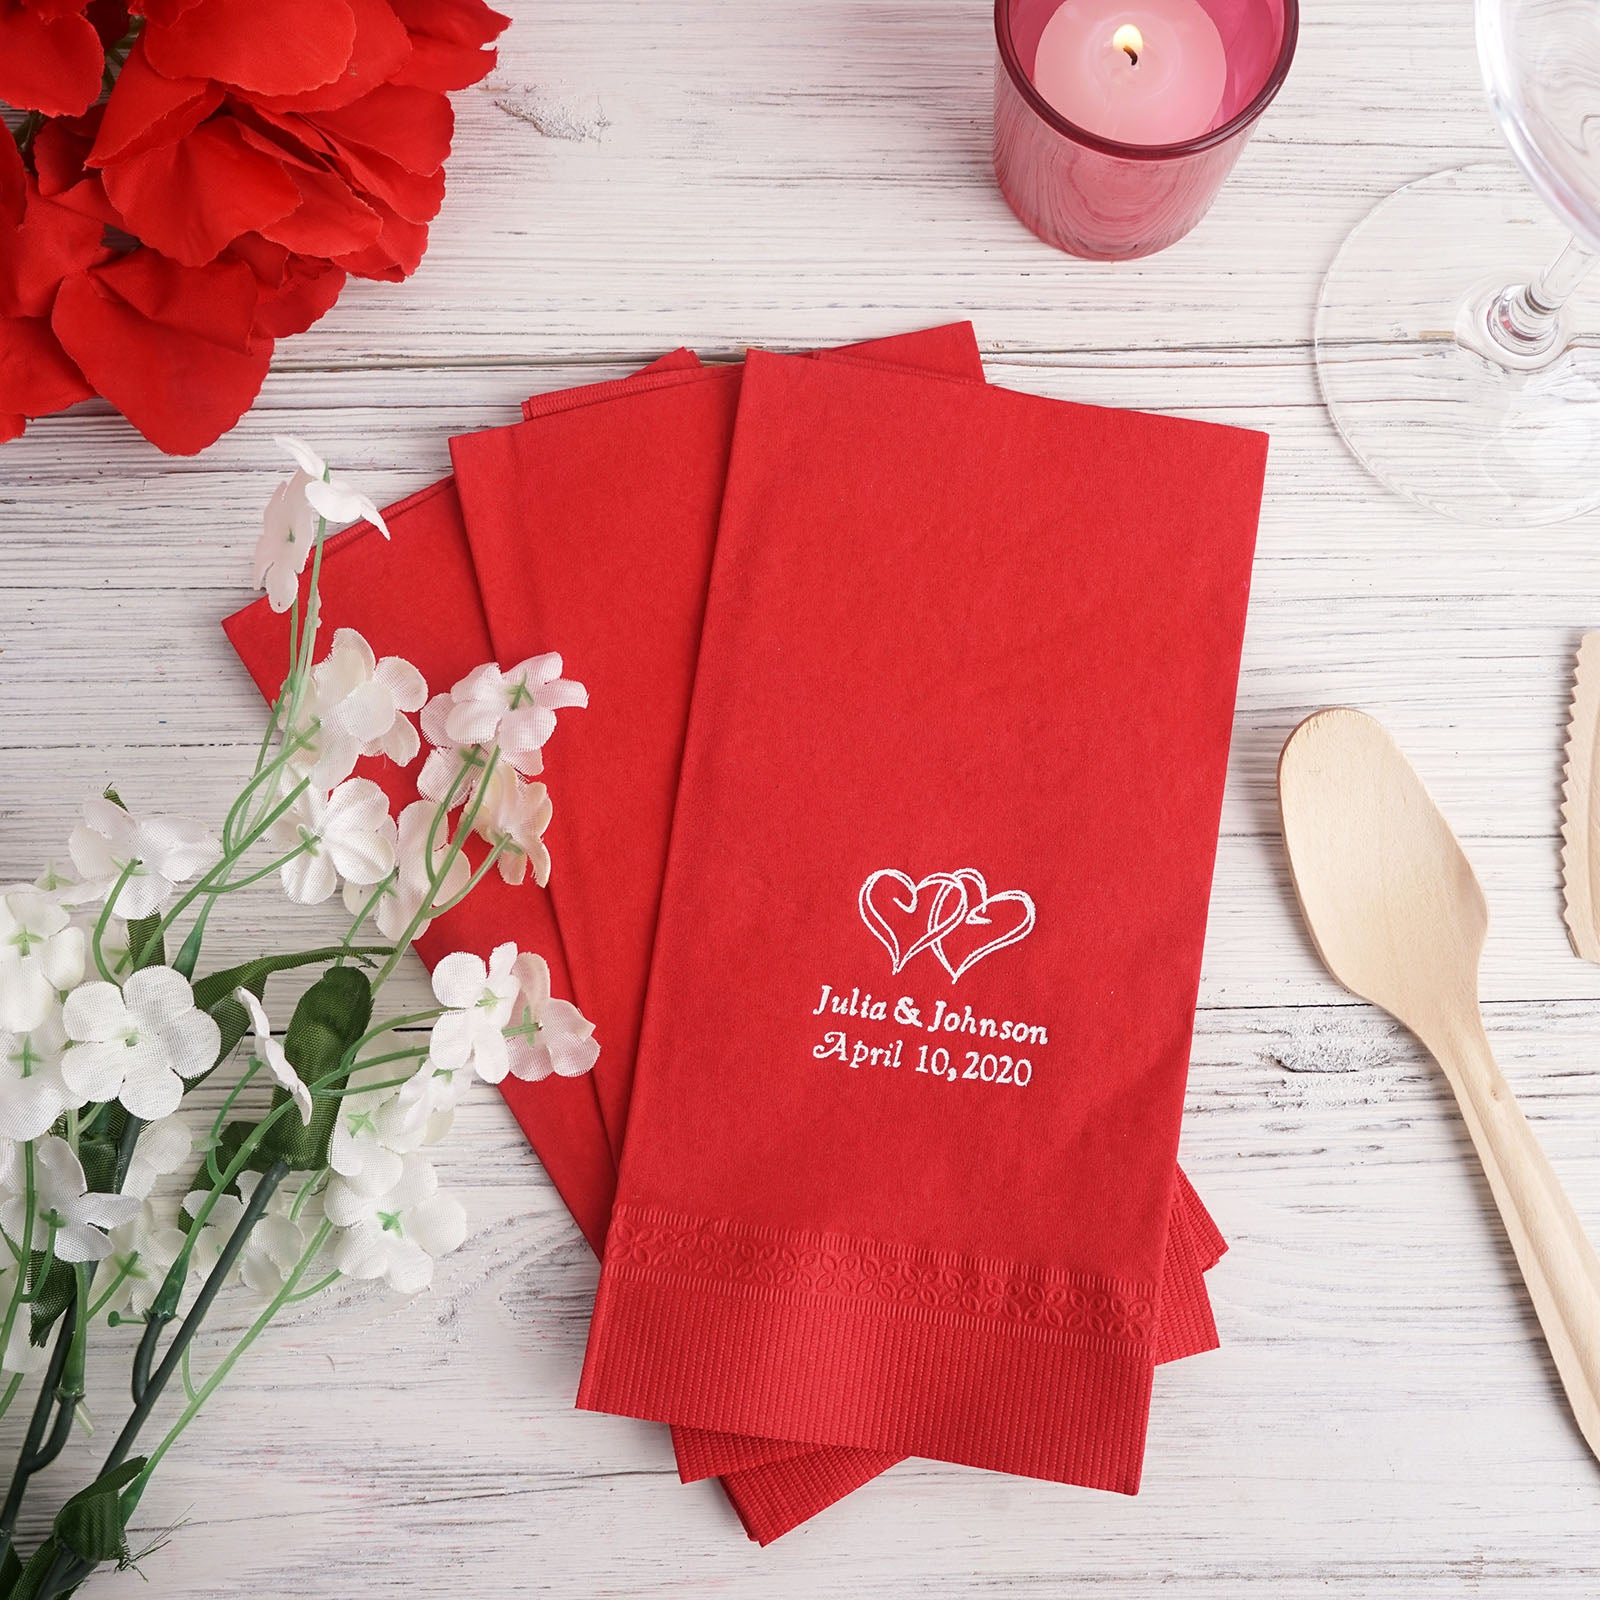 Hot Foil Printed Red Napkin